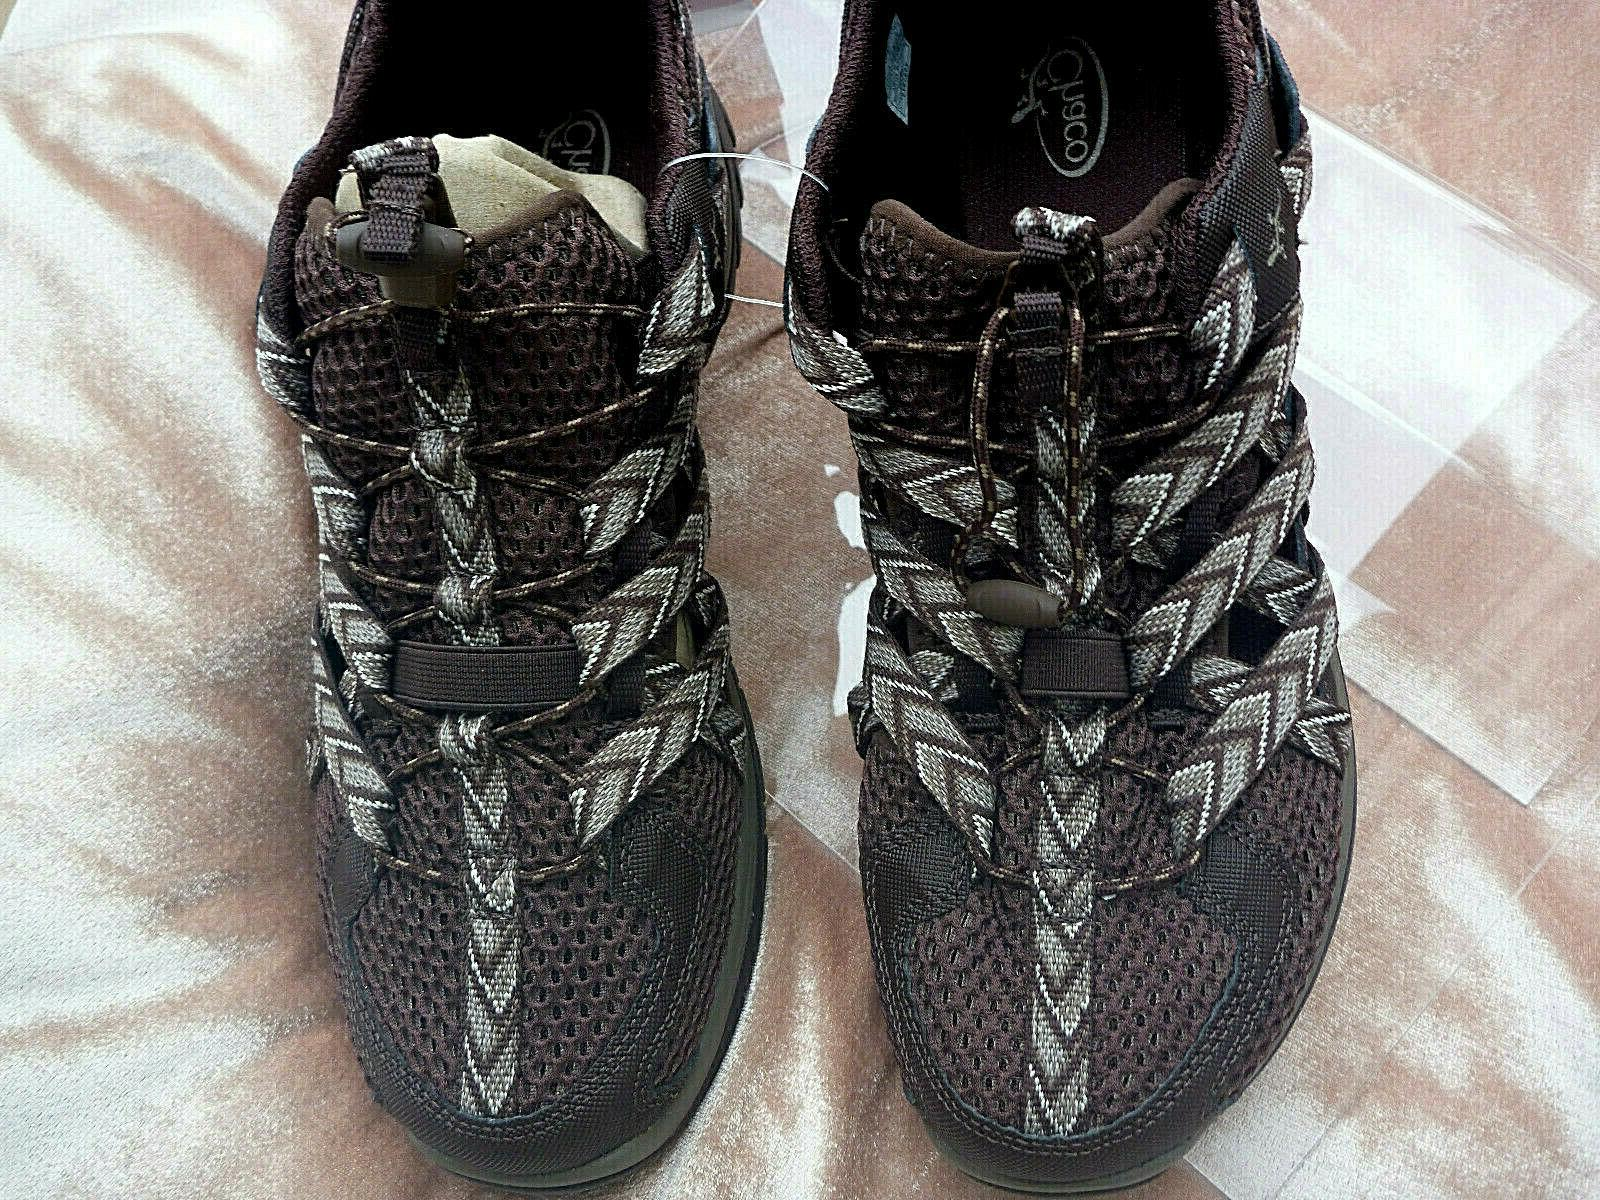 New Evo 1 Shoes Brown sz Mesh Non-marking